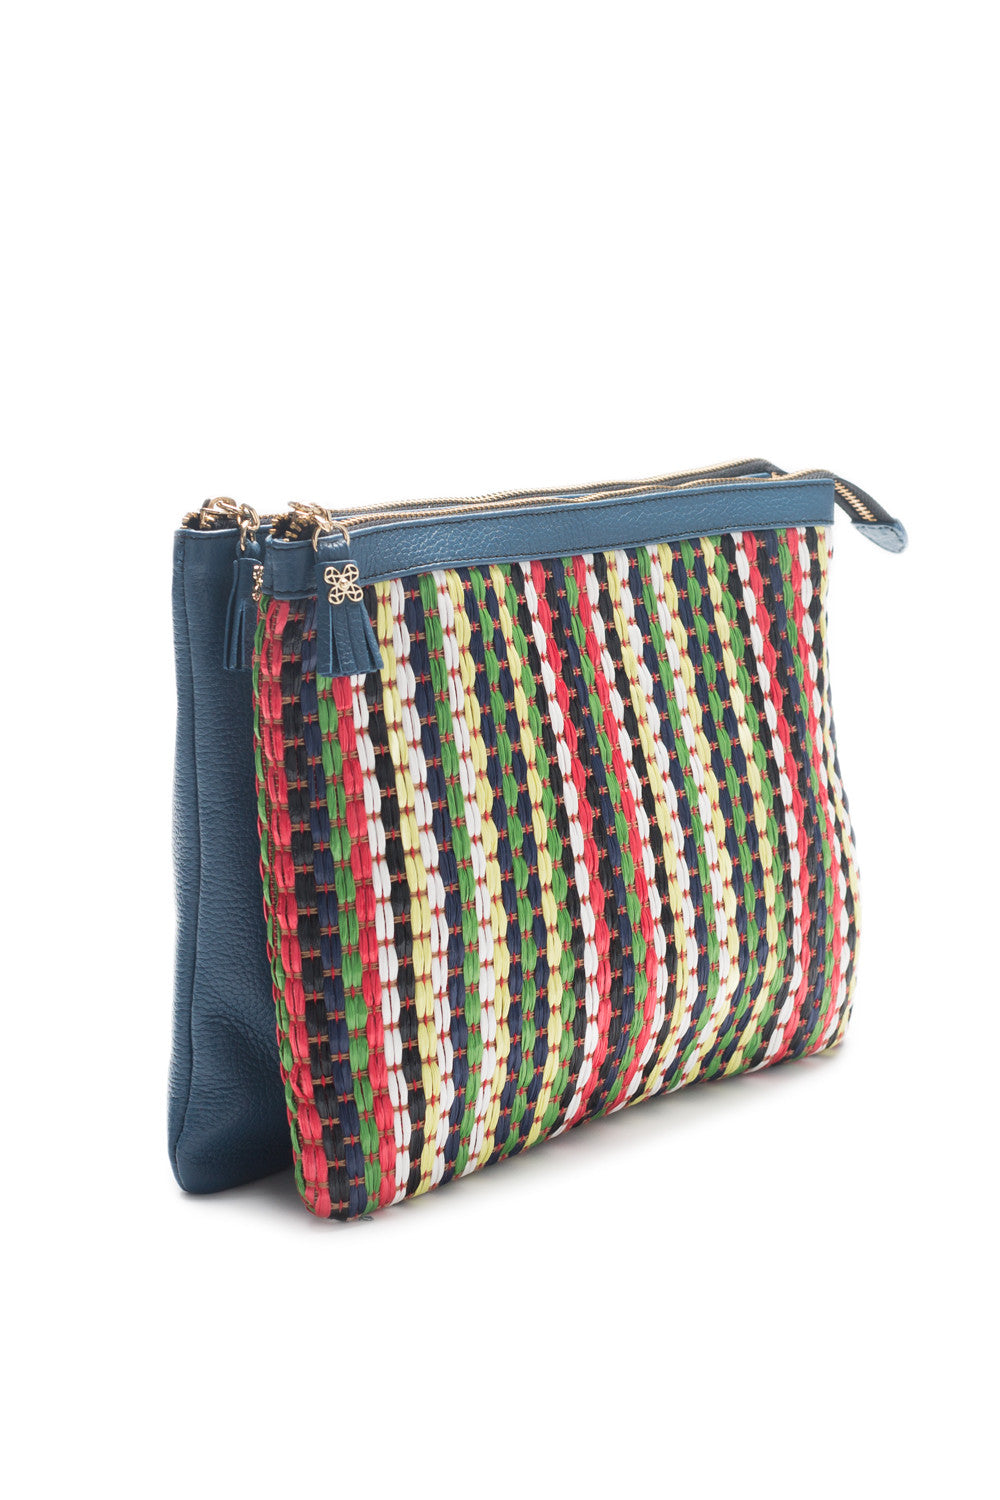 Mel Boteri | Multicolor Raffia and Denim Leather 'Abbey' Clutch | Side View